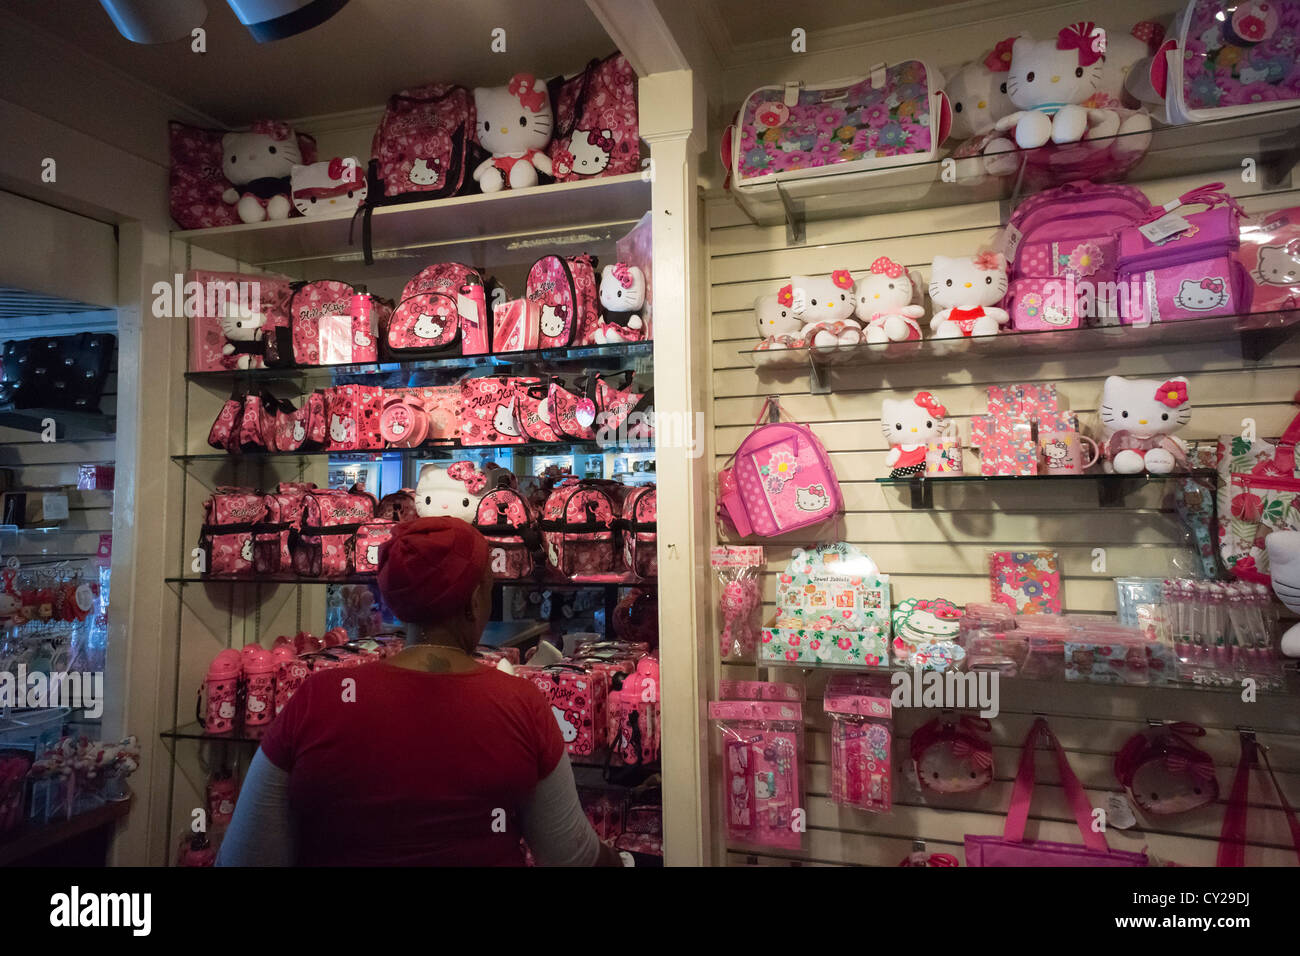 Knotts Berry Farm California Usa Hello Kitty Themed Souvenirs Stock Photo Alamy